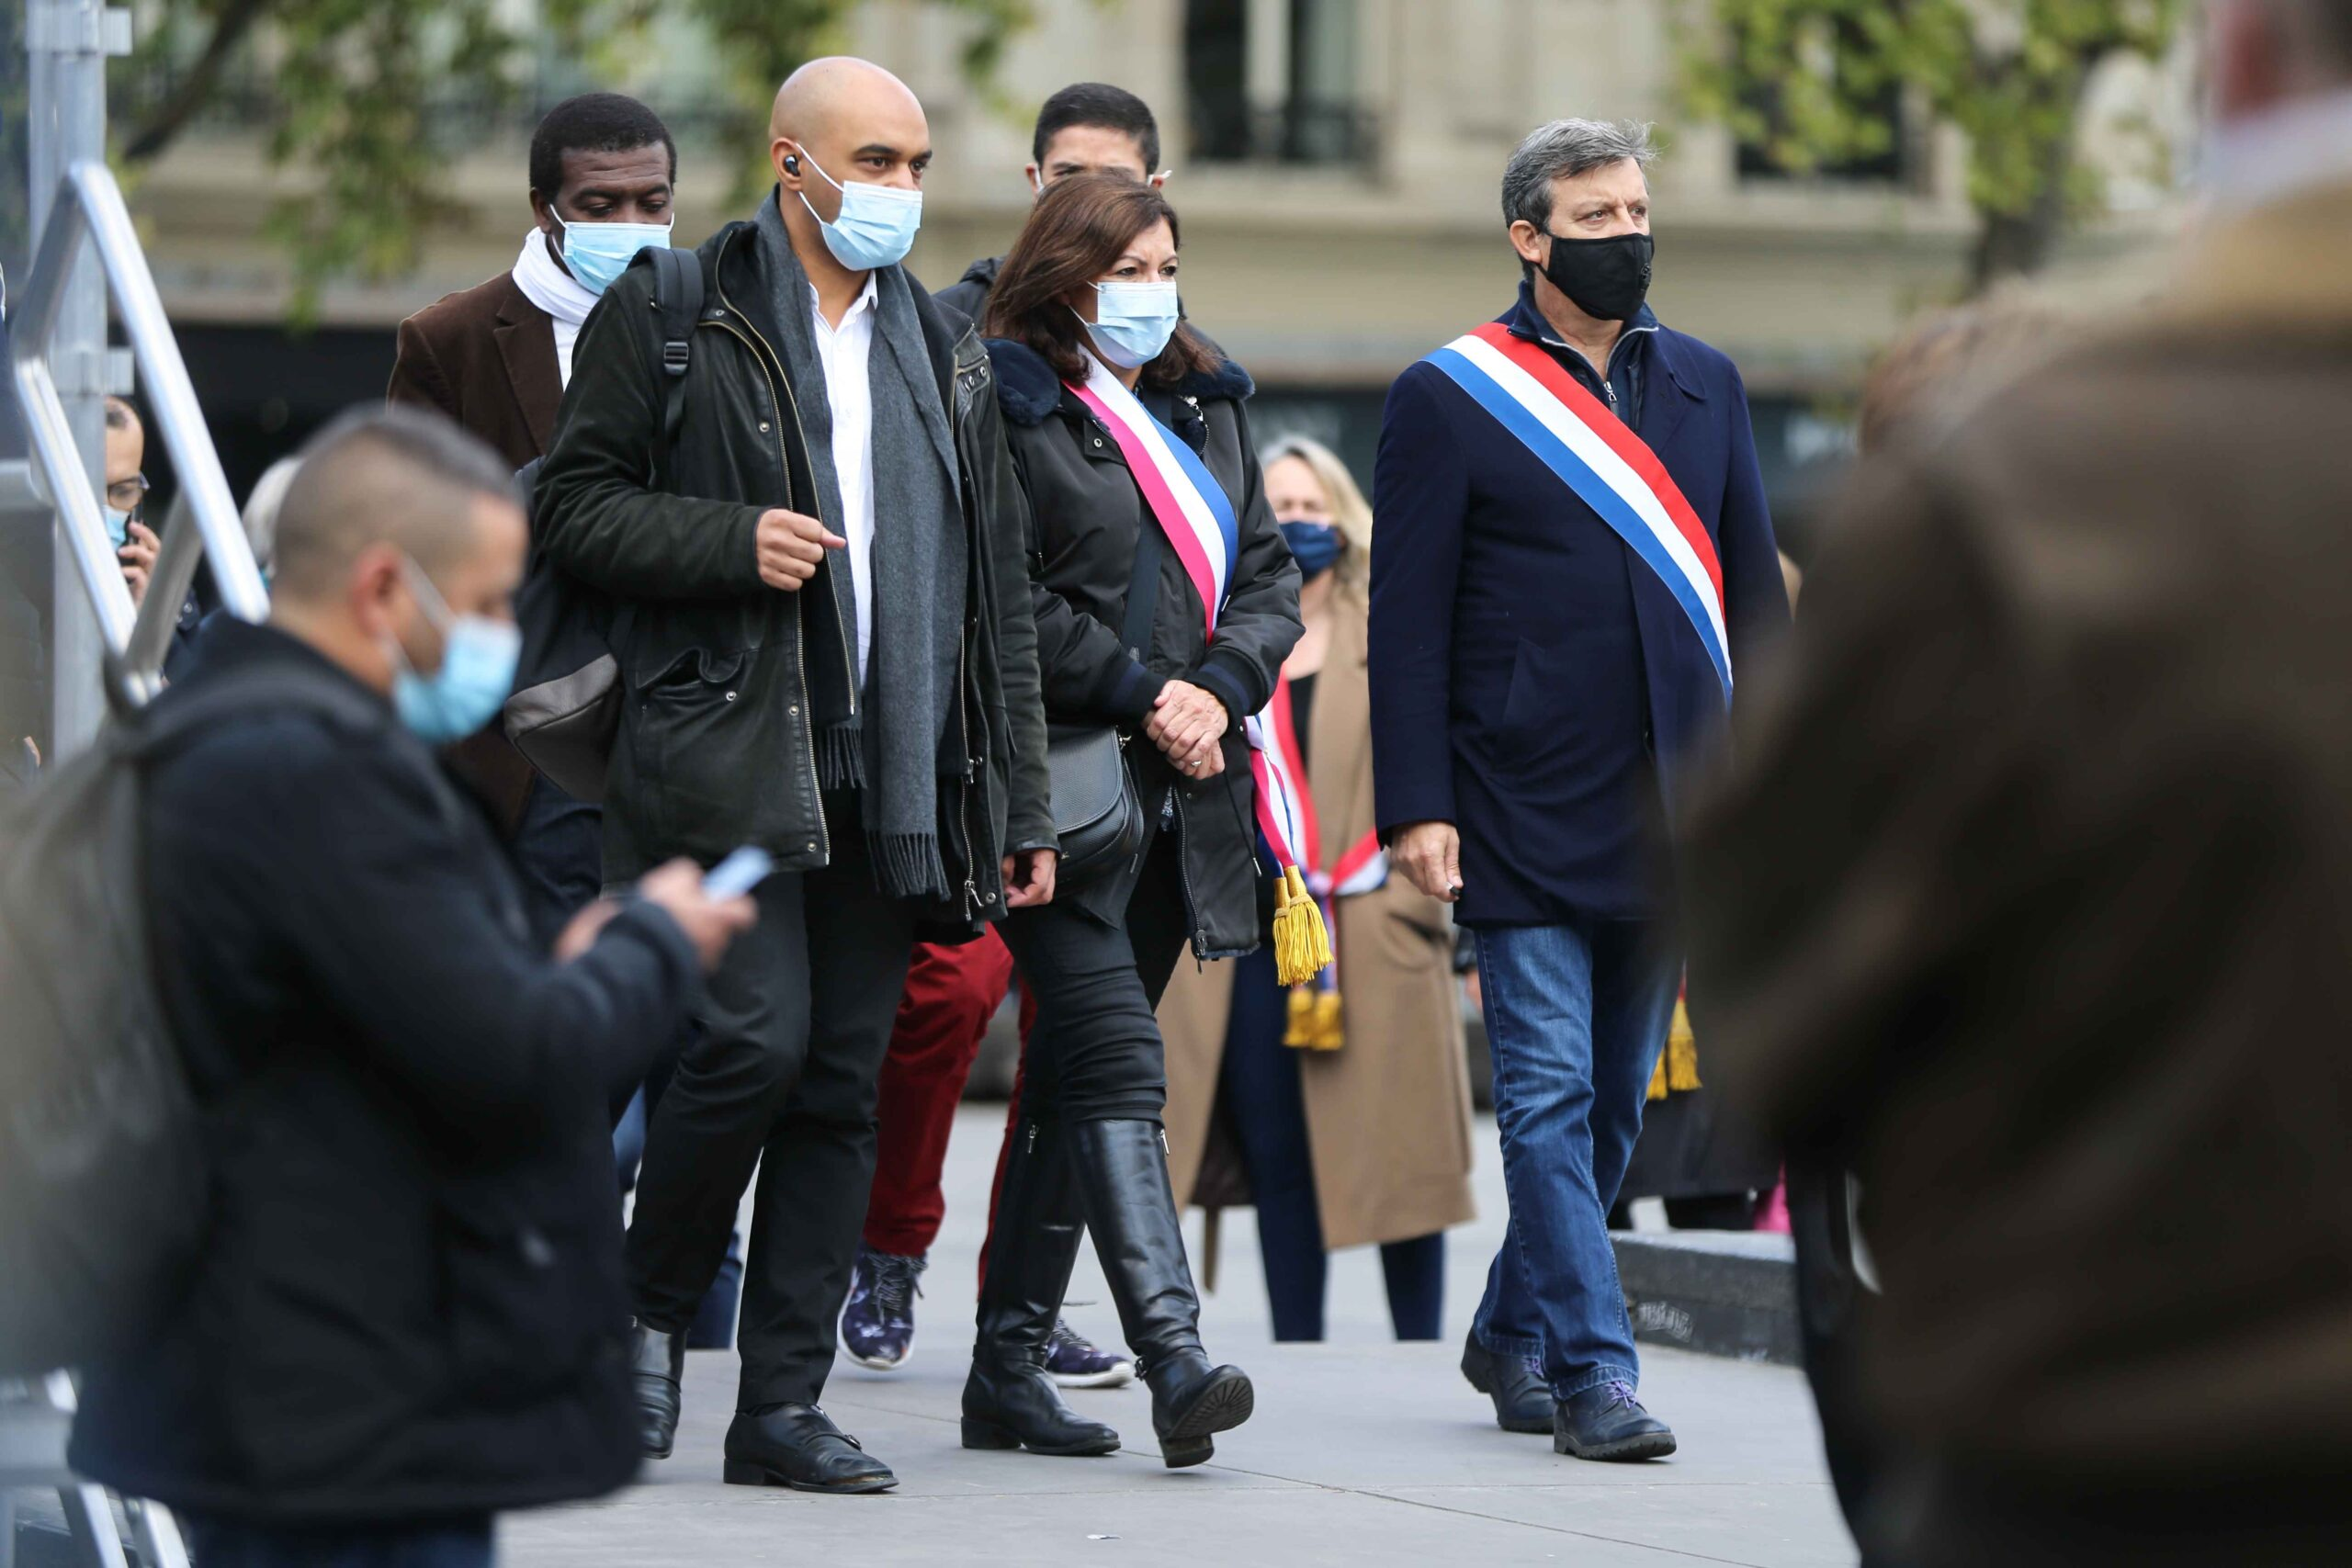 Mayor of Paris Anne Hidalgo (3R) and Head of SOS Racisme anti-racist NGO Dominique Sopo (4R) arrive as people gather on Place de la Republique in Paris on October 18, 2020, in homage to history teacher Samuel Paty two days after he was beheaded by an attac